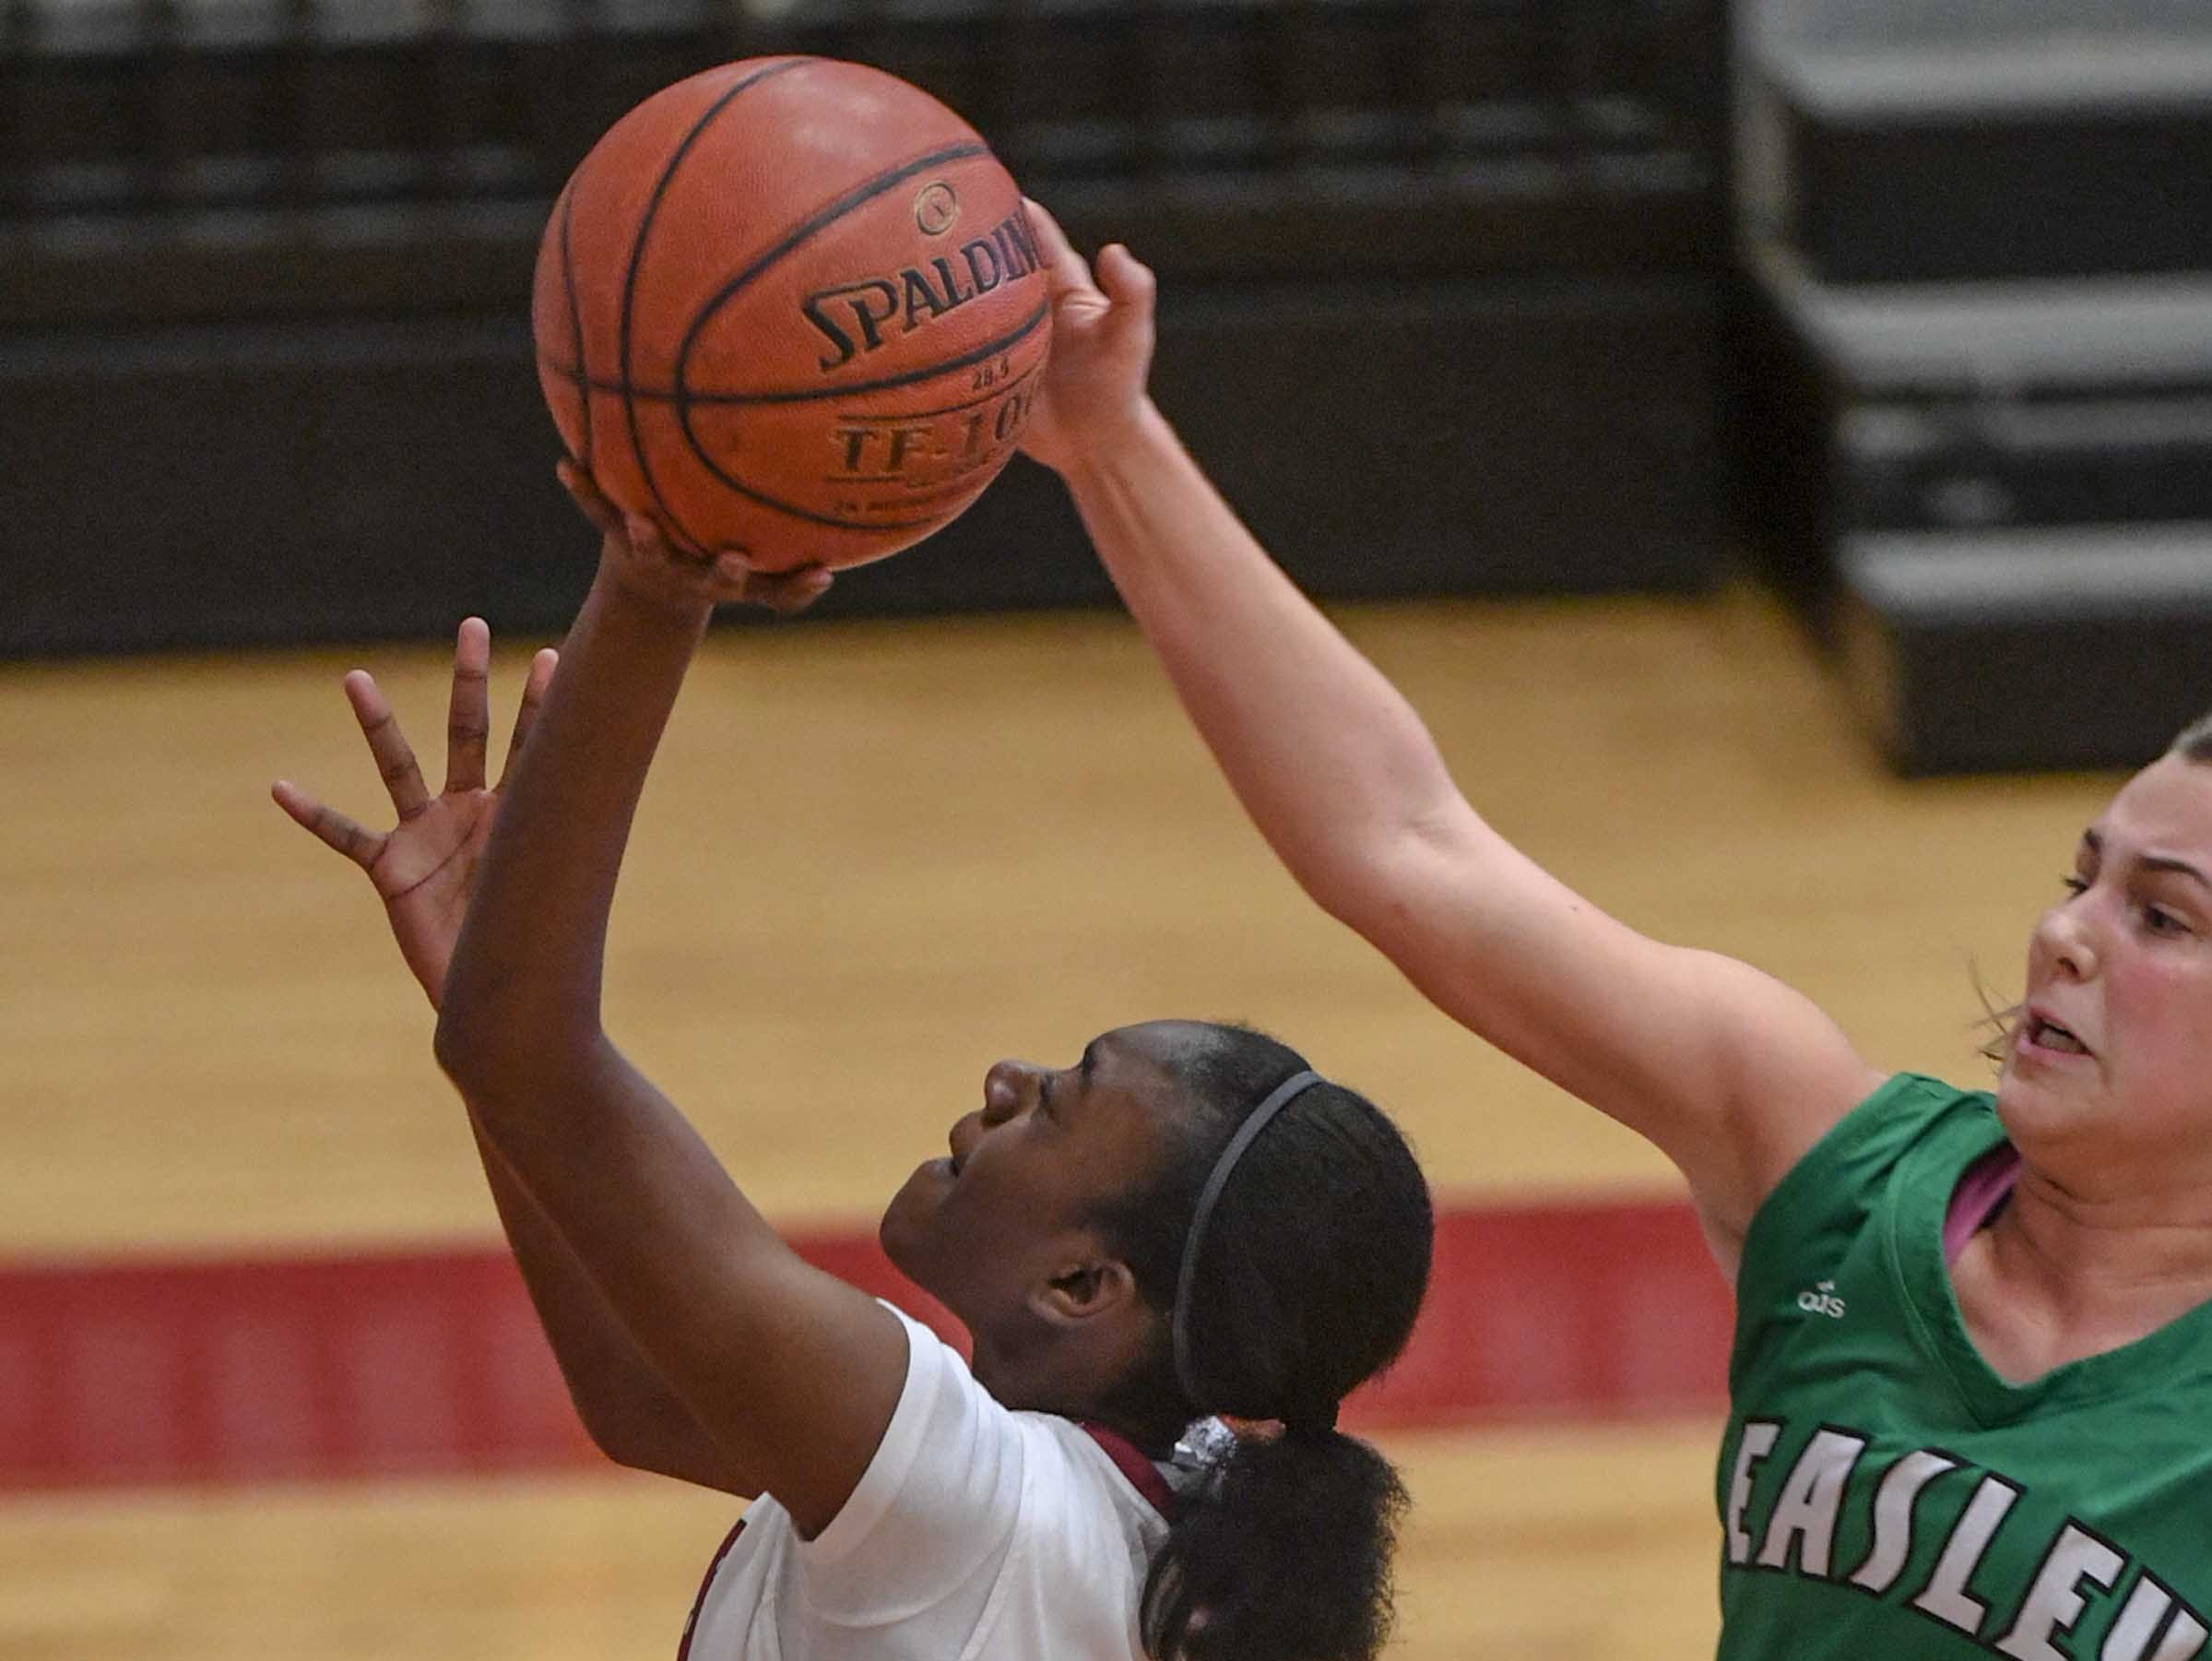 Westside freshman Aziyah Bell(4) has a shot blocked by Easley senior Aubrey Lewis(10) during the third quarter at Westside High School in Anderson on Friday.